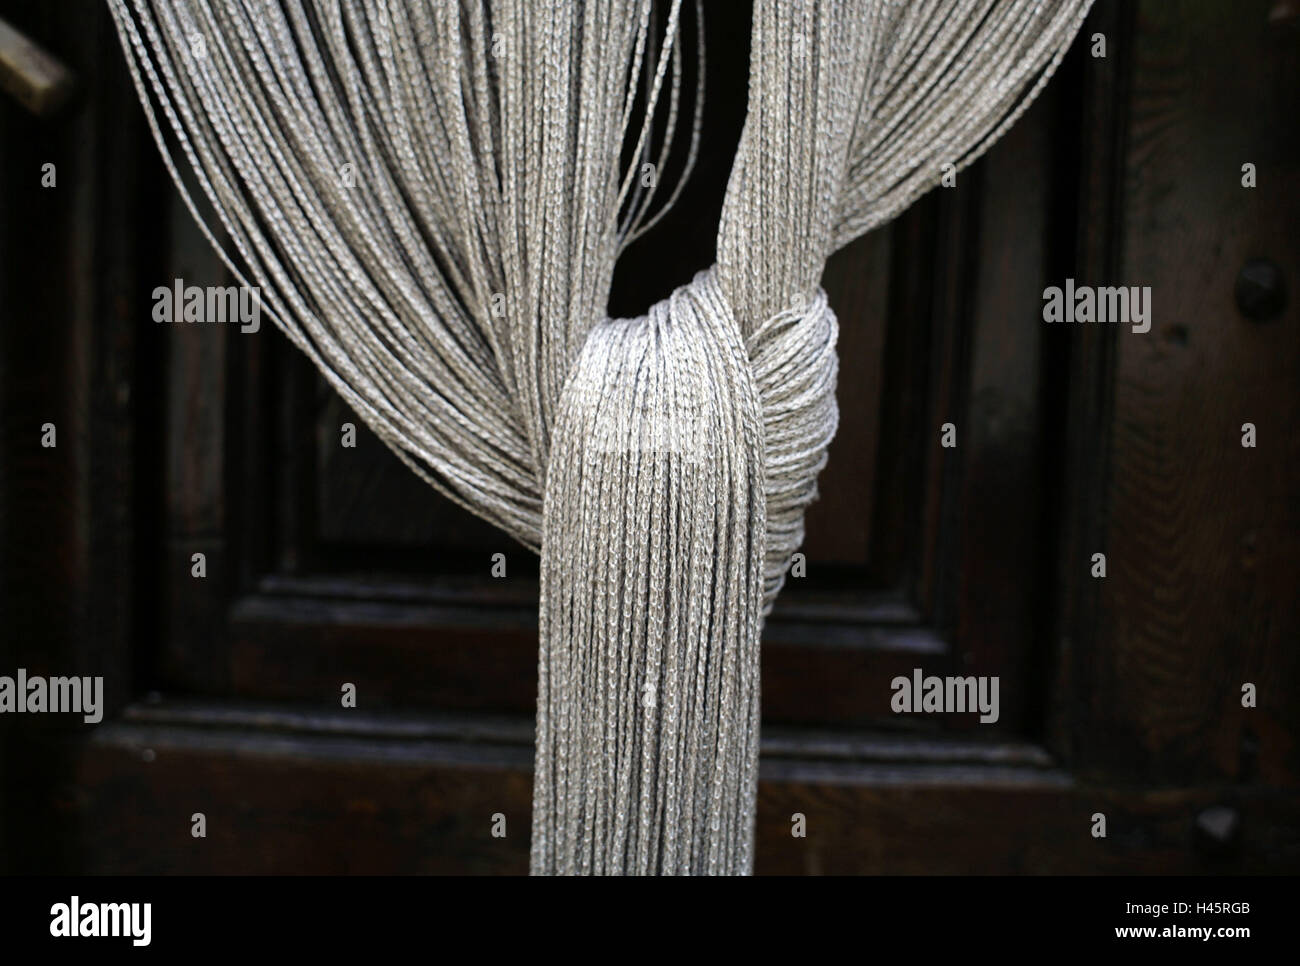 Door Curtain, Detail, Door, Input, Curtain, Threads, Thread Curtain,